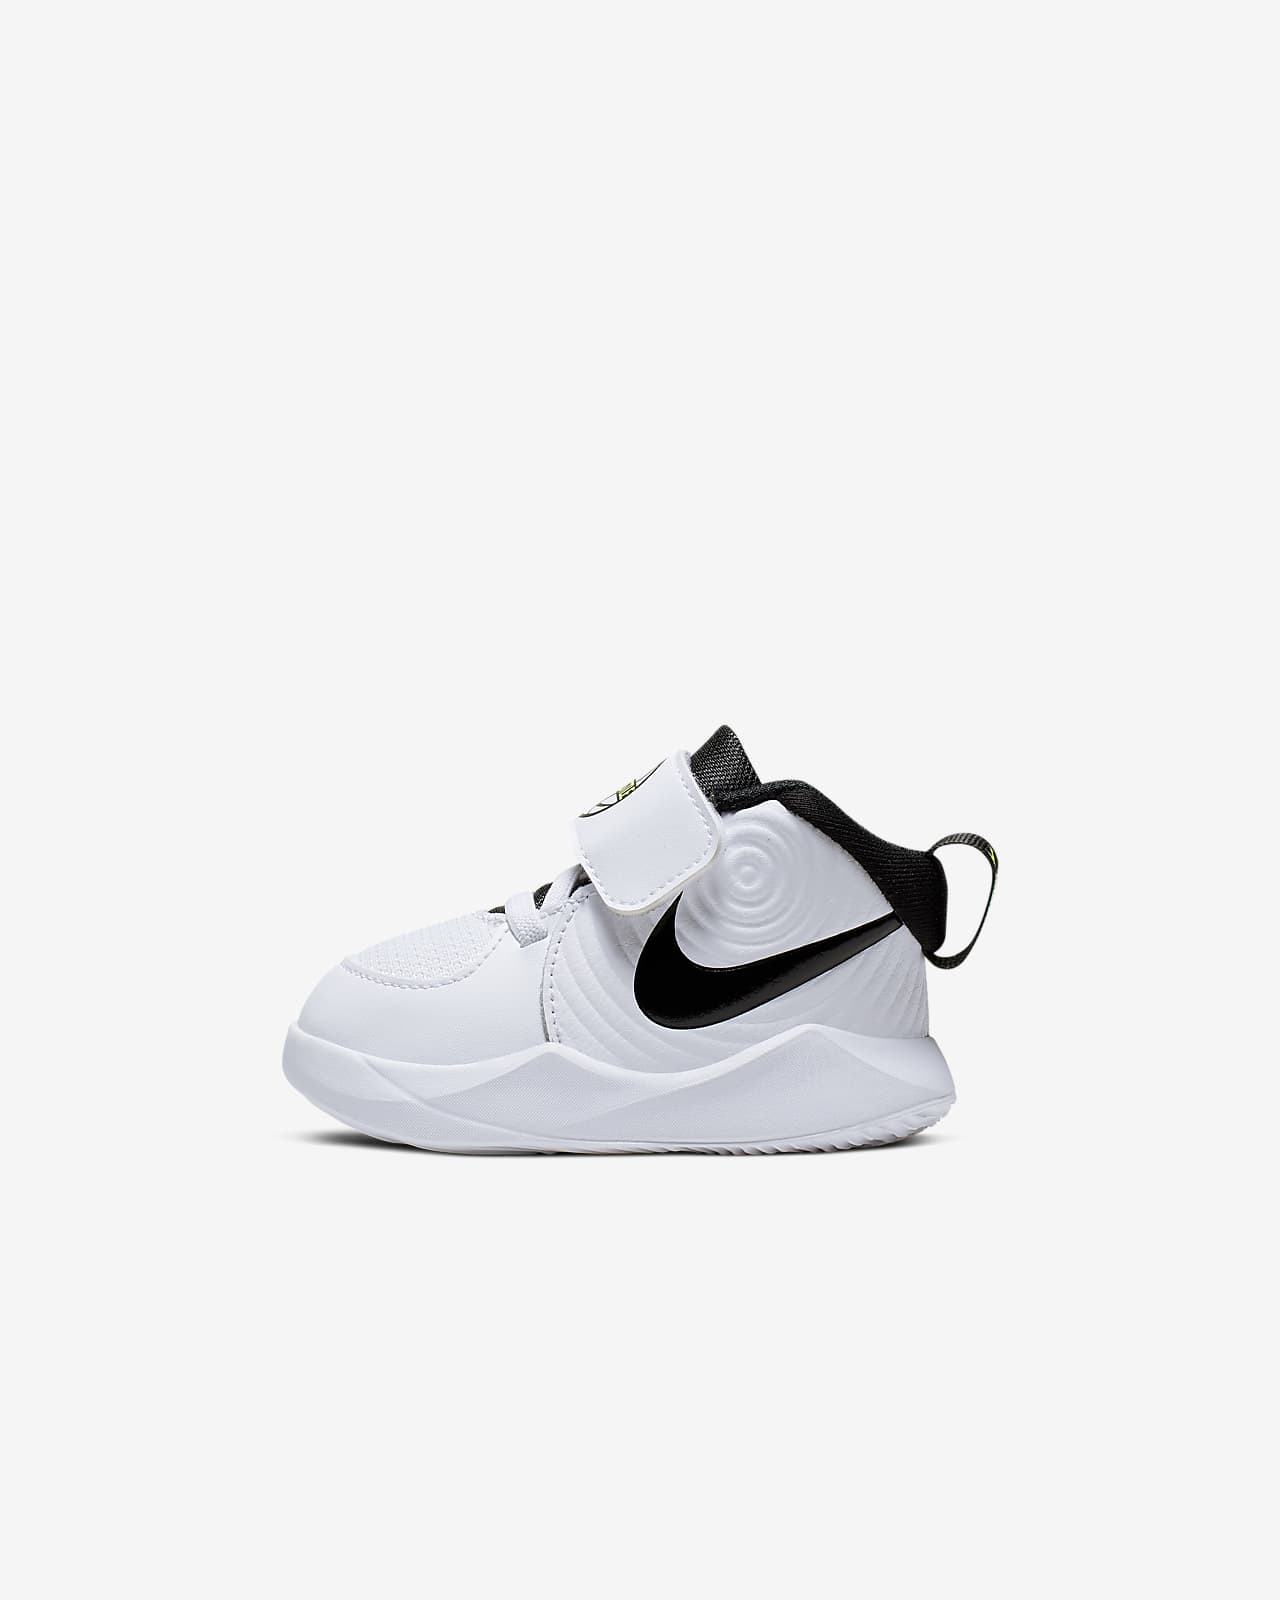 Nike Team Hustle D 9 Baby & Toddler Shoe